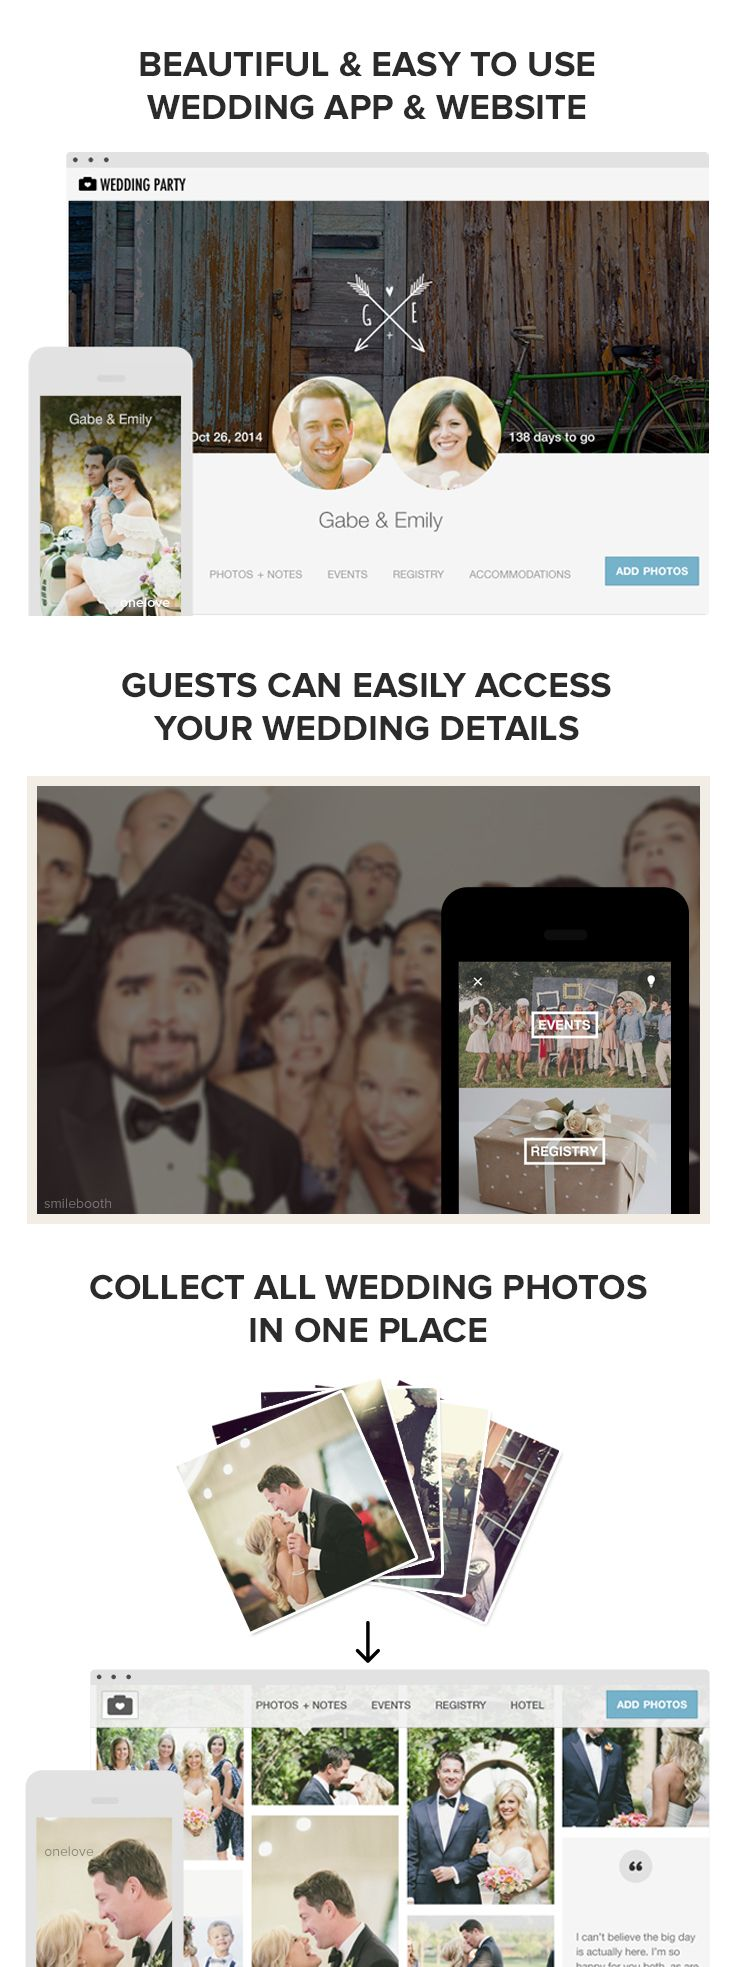 This free wedding app is a must-have! You can capture all of the photos your guests take at the wedding!